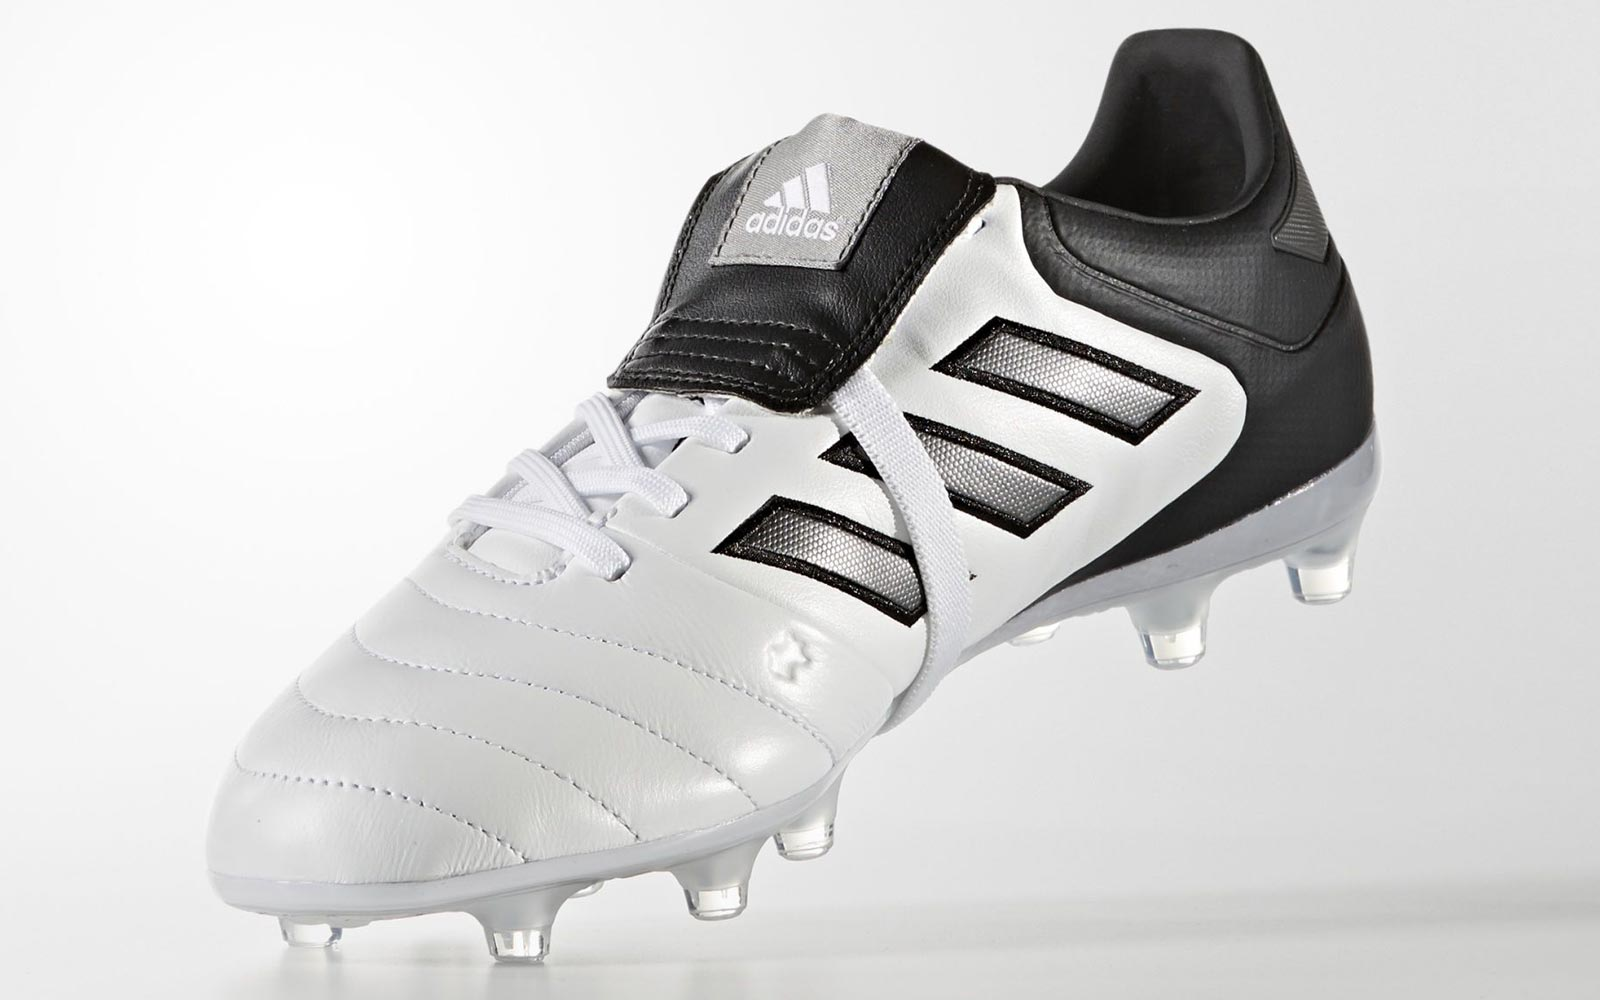 1be317e9b74dc6 ... Mundial FG Special Edition The Tongue is Back All-New Adidas Copa Gloro  17 Boots Released - Footy Headlines ...